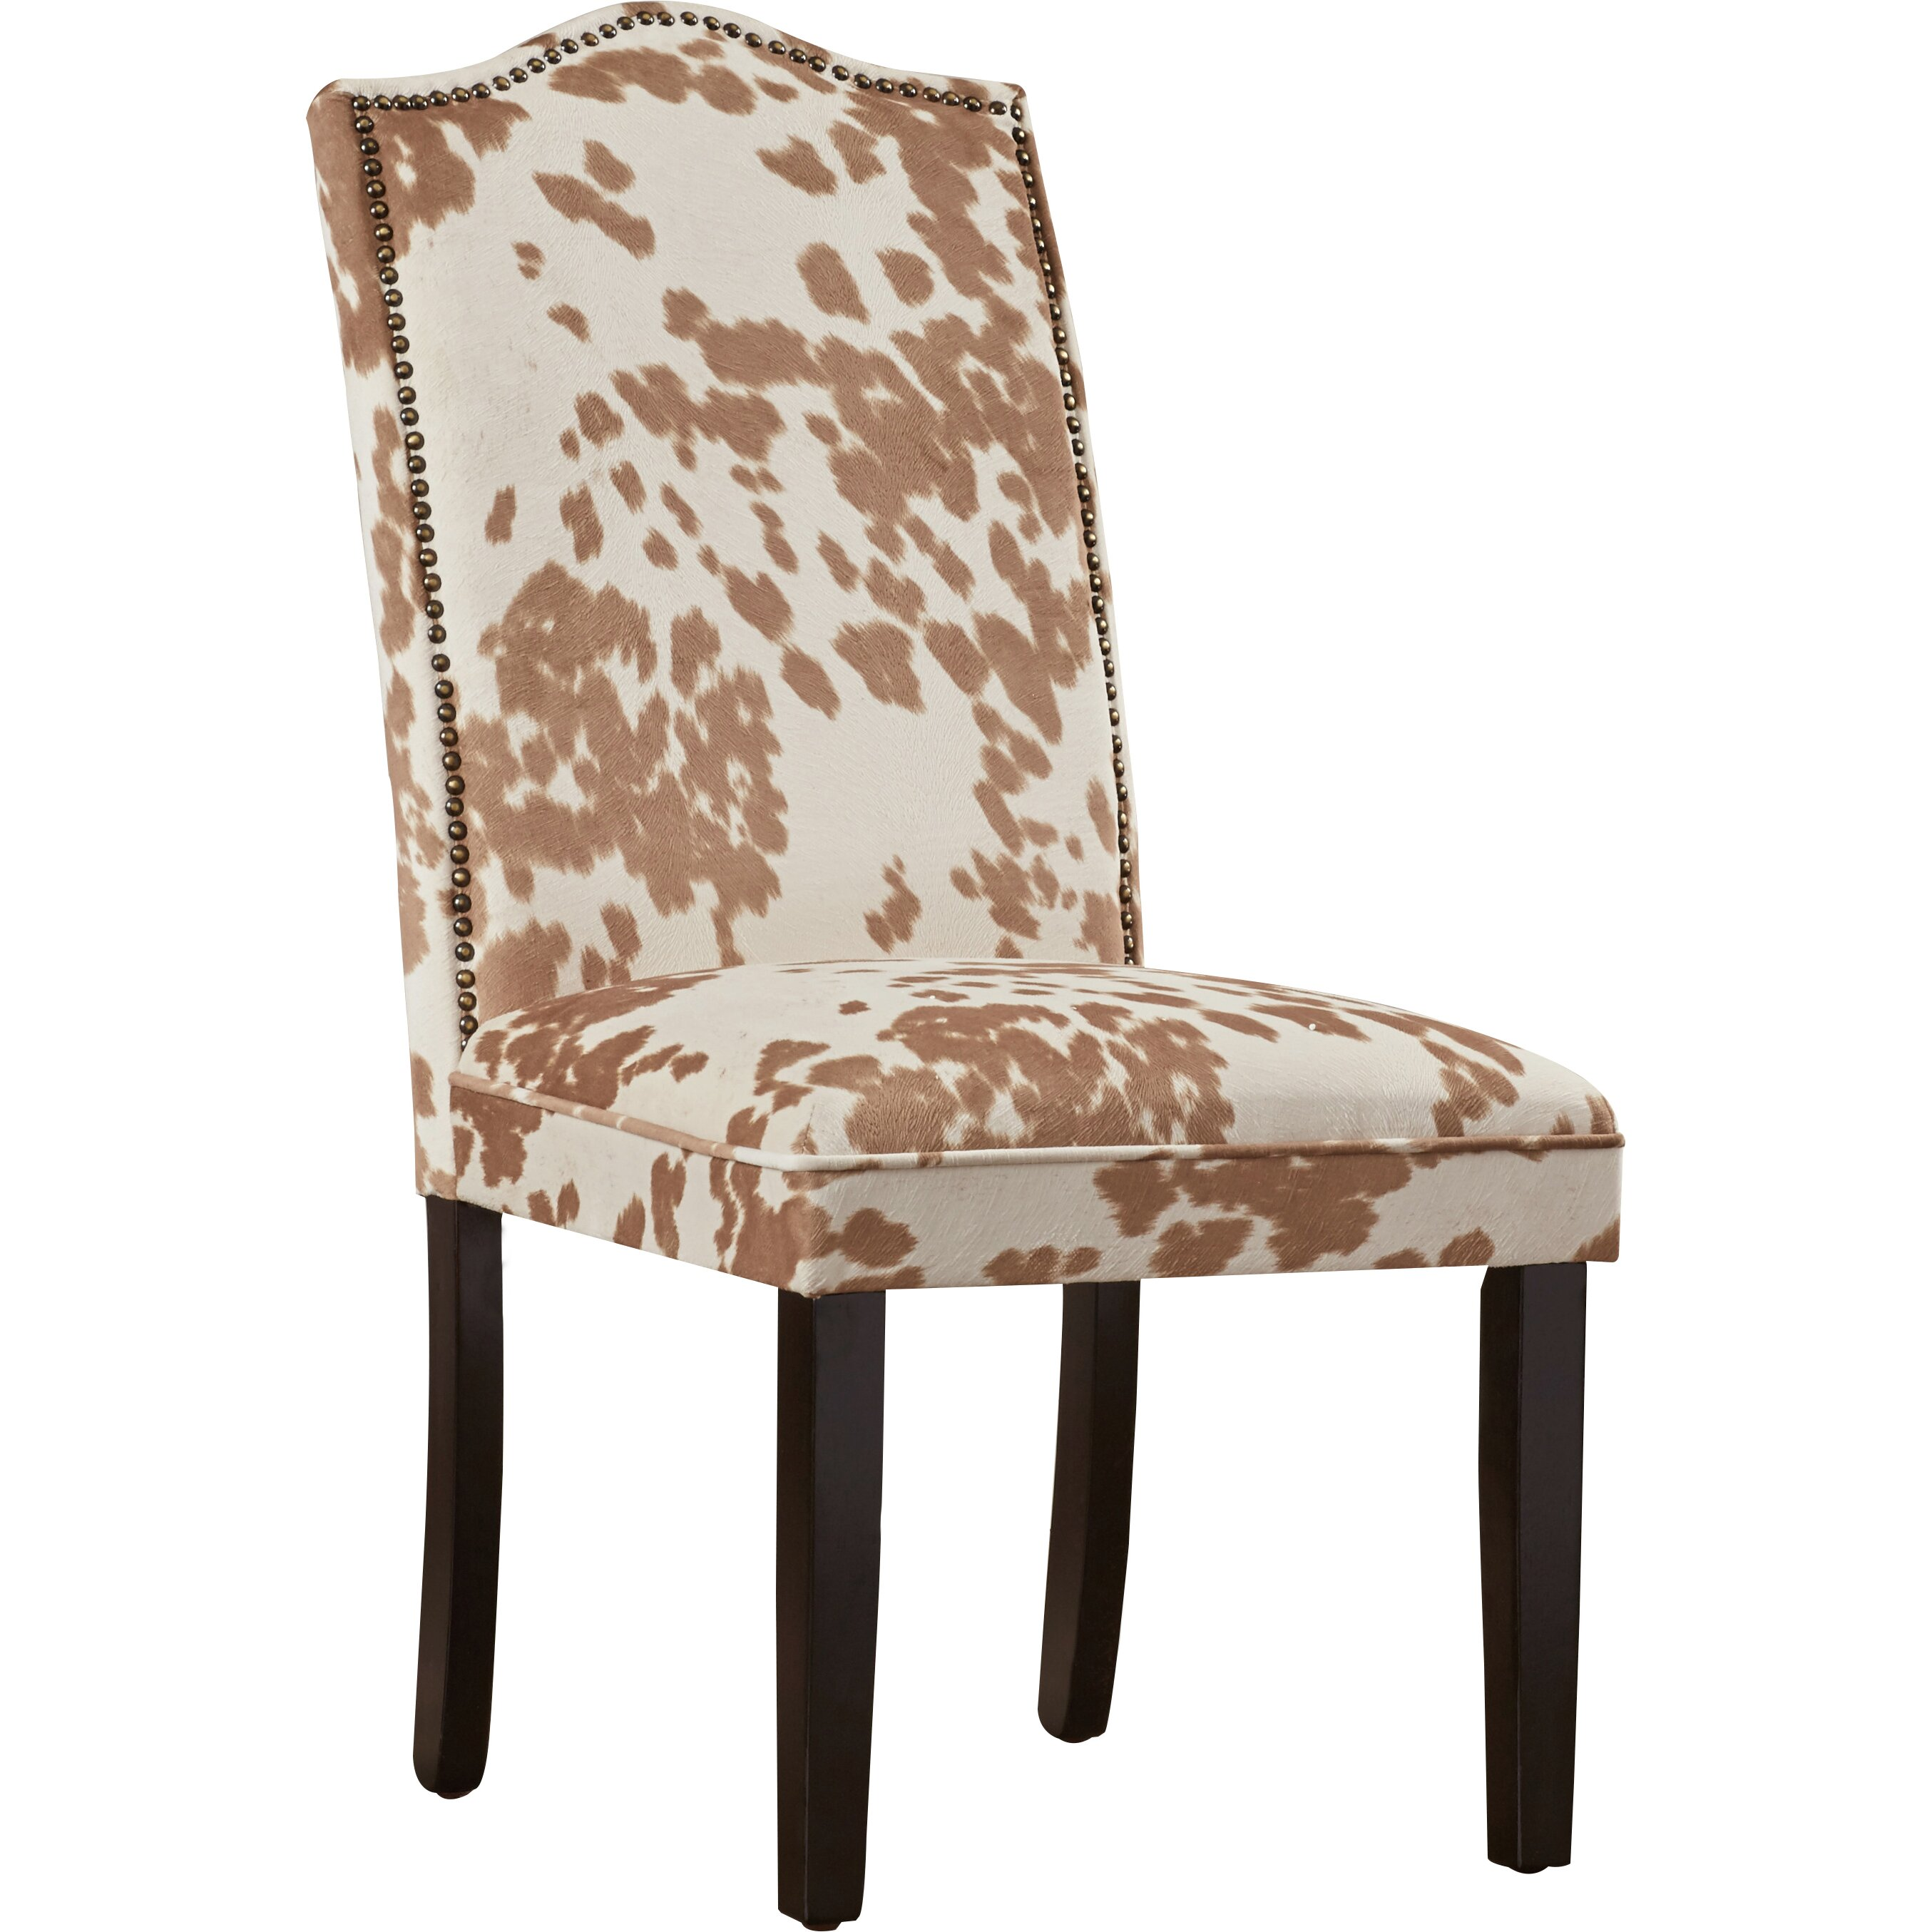 Trent austin design healdsburg nailhead parsons chair for Low back parsons dining chair